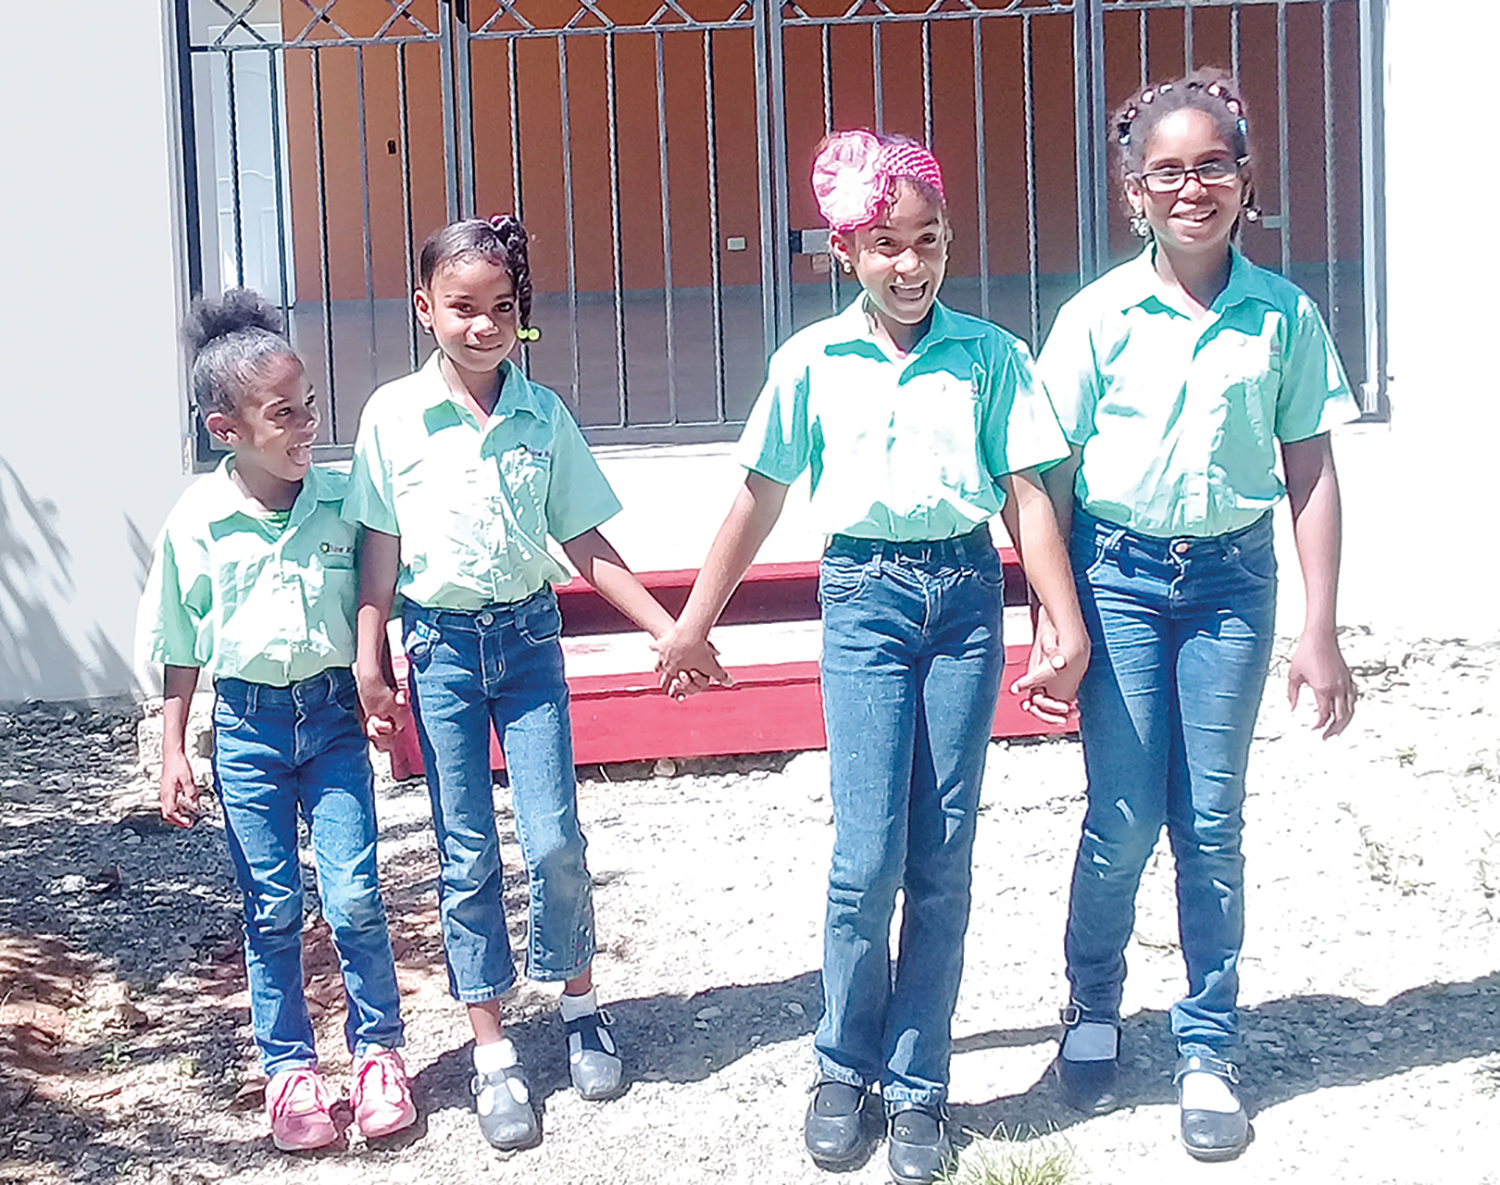 Join us in prayer for the children of Los Castillos, as they grow in knowing Jesus.